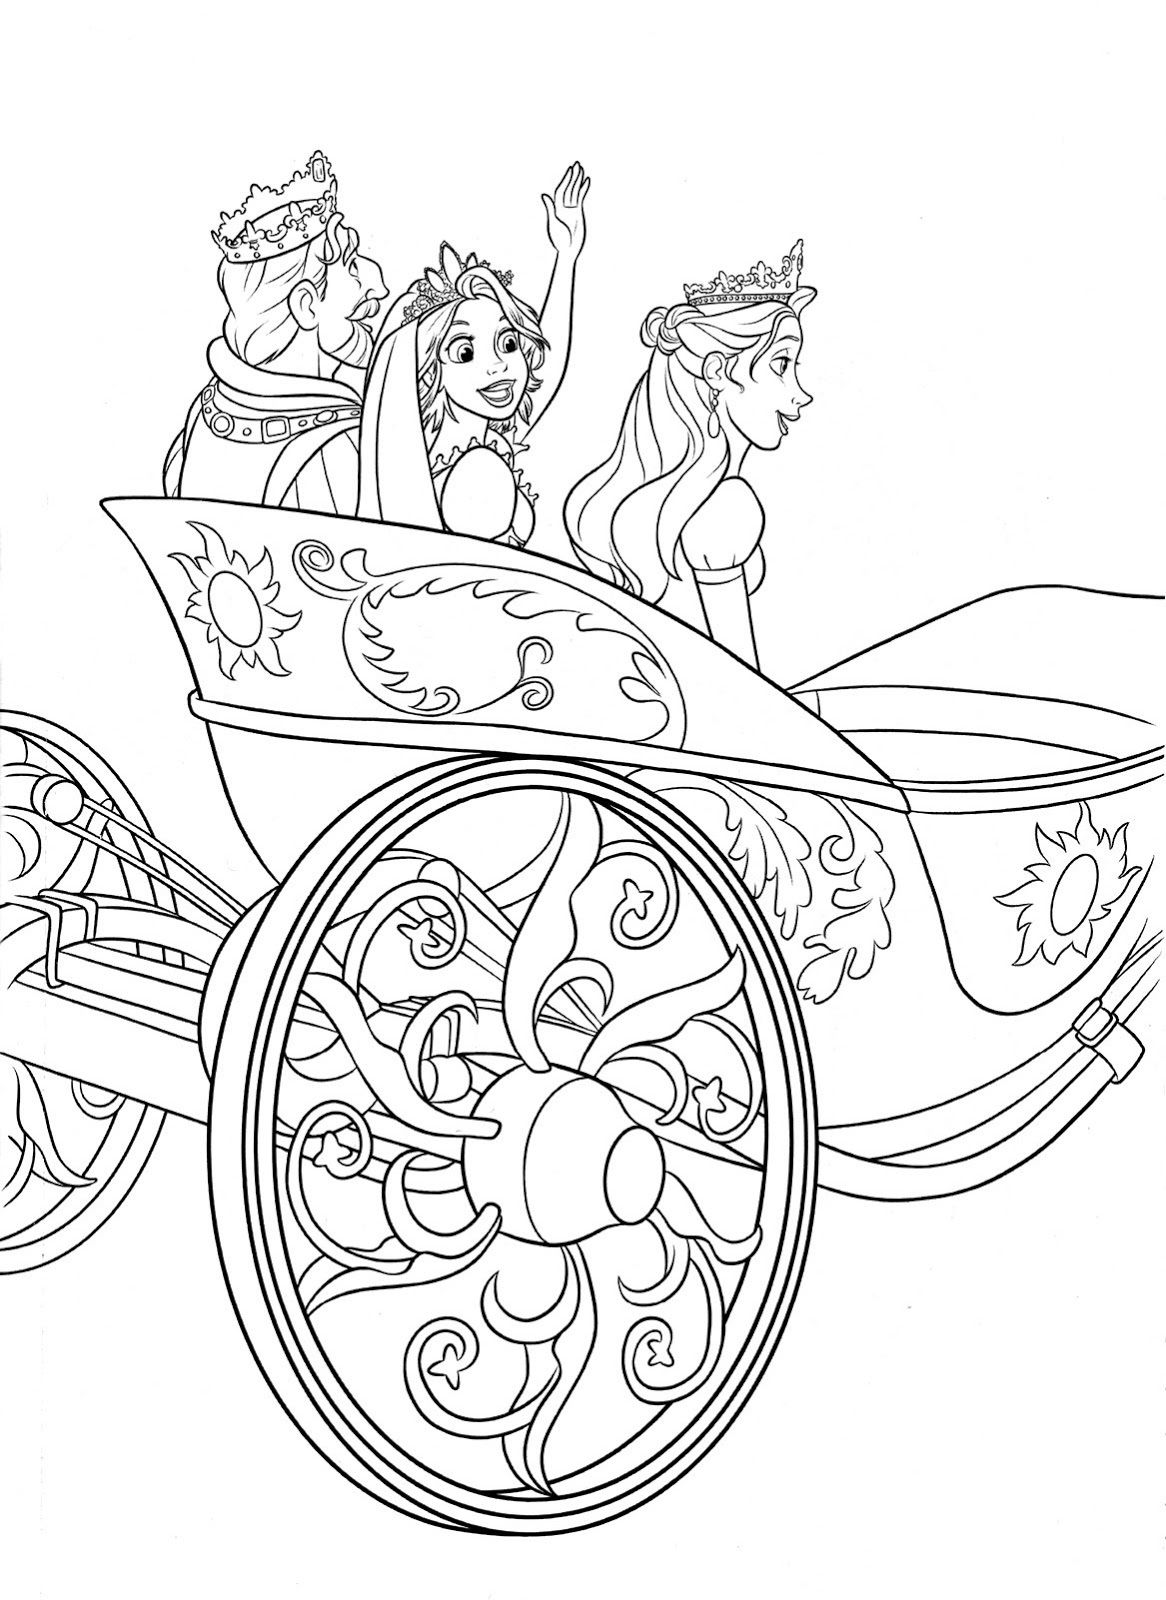 tangled coloring pages printable disney activity shelter - Tangled Coloring Book